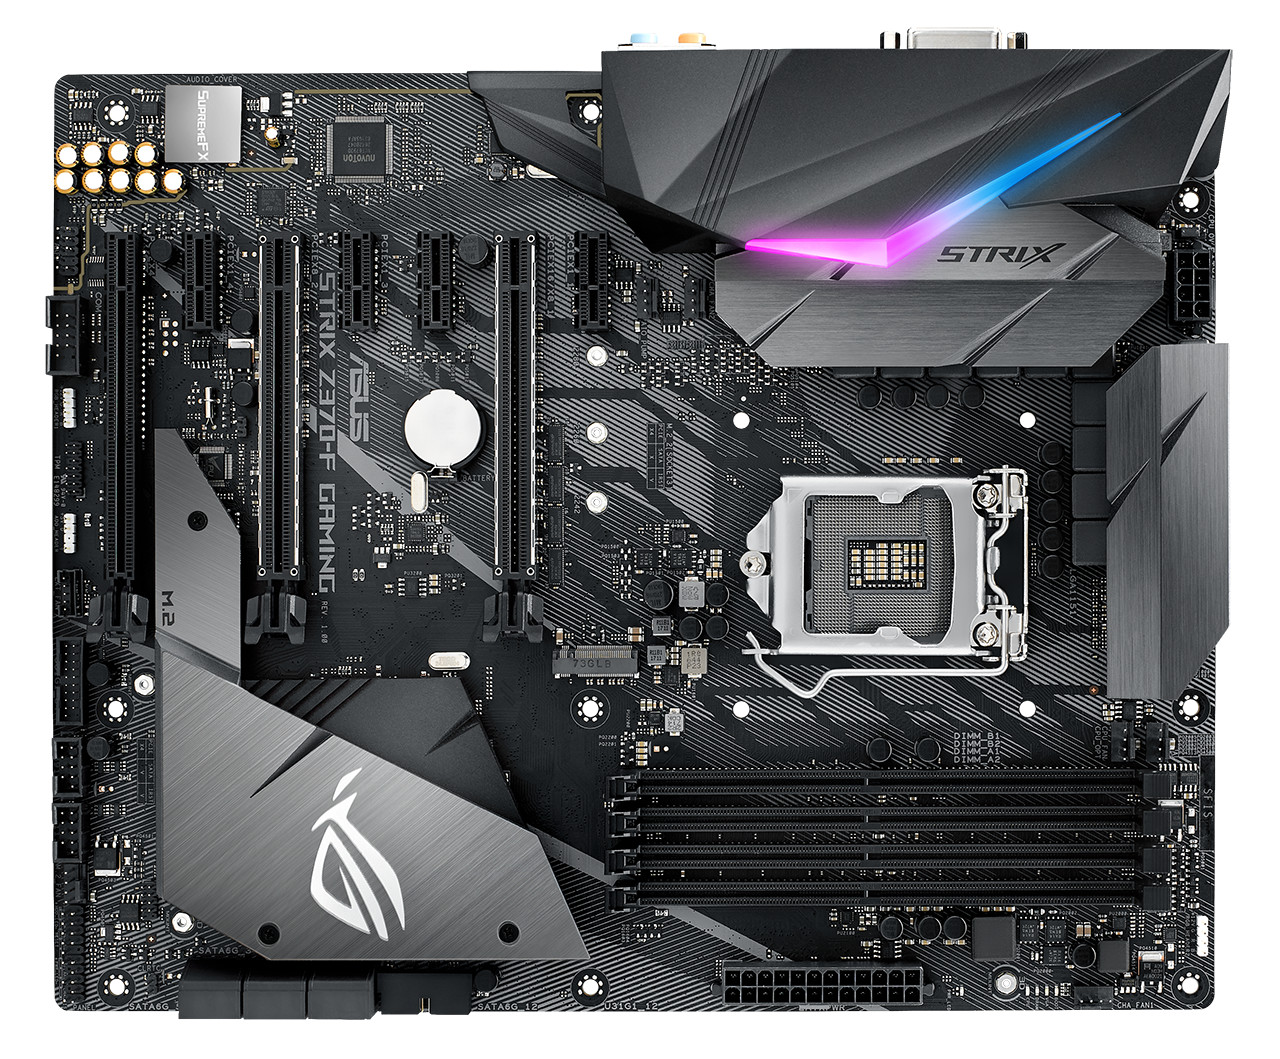 ASUS Ready with 19 Motherboard Models Based on Intel Z390 Chipset